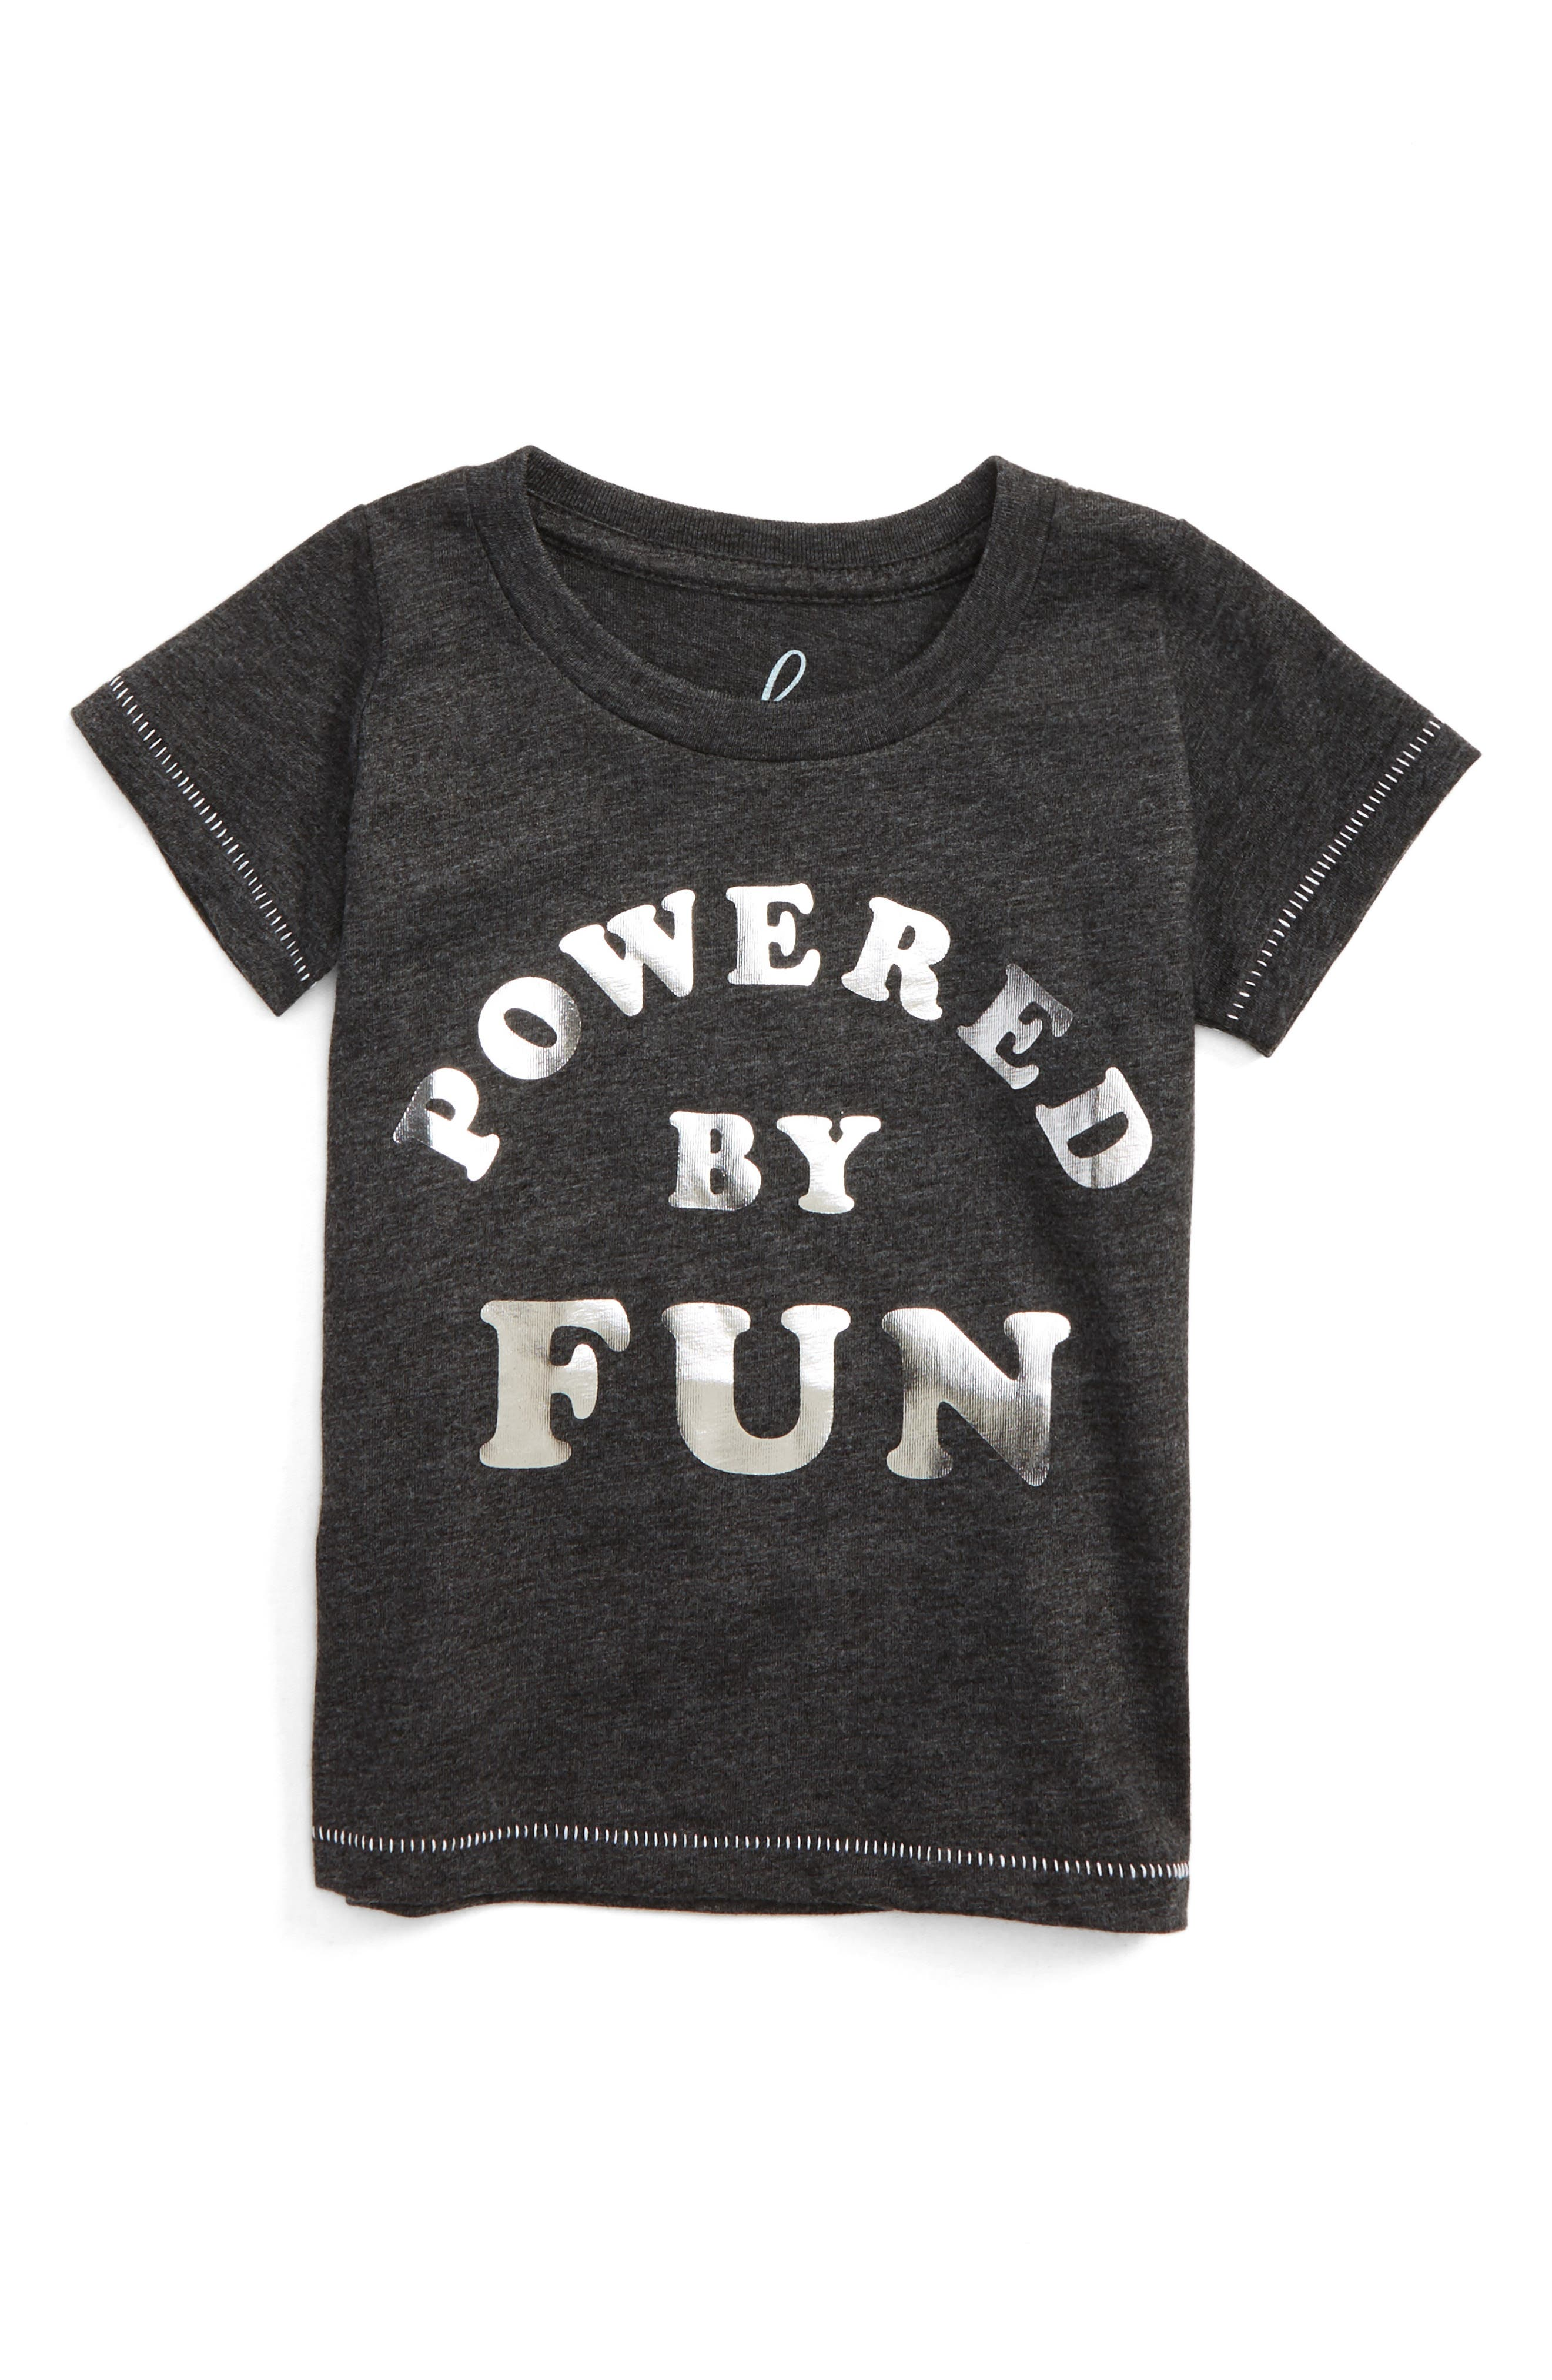 Powered By Fun Graphic Tee,                             Main thumbnail 1, color,                             021